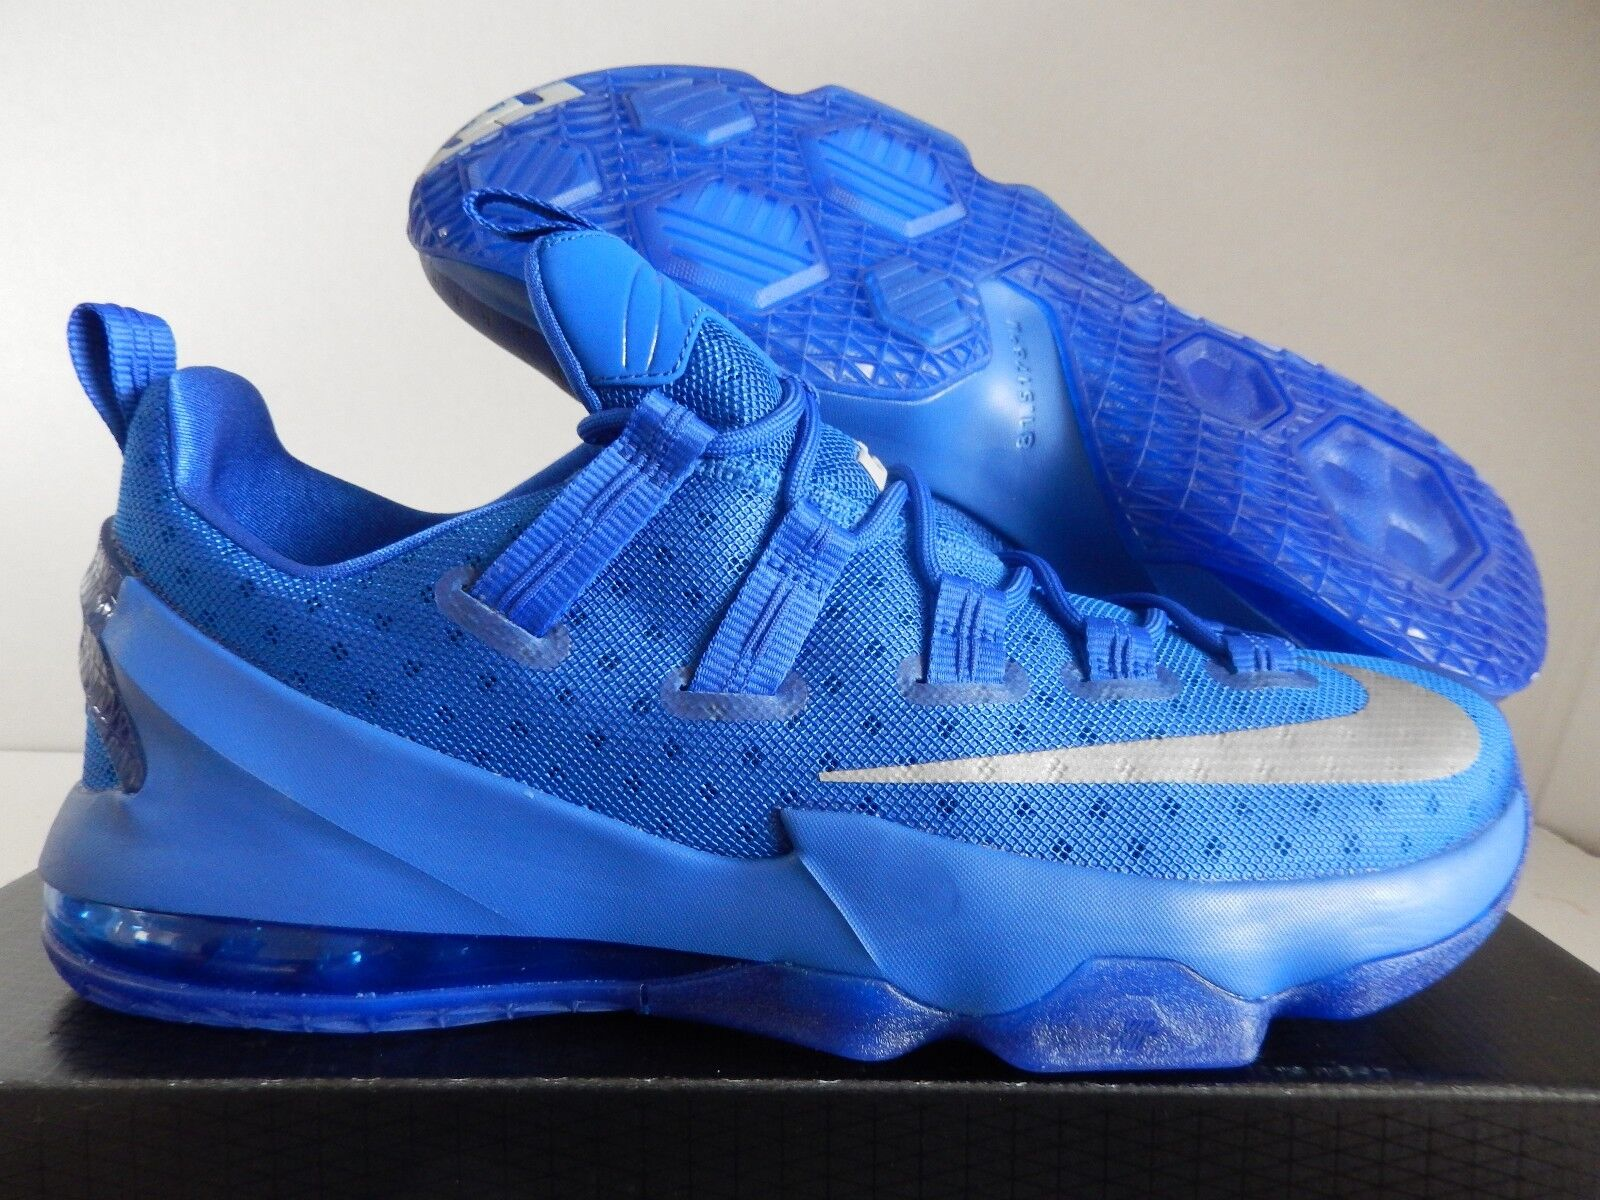 NIKE LEBRON XIII 13 LOW GAME ROYAL blueE  KENTUCKY blueE  SZ 13 [831925-400]